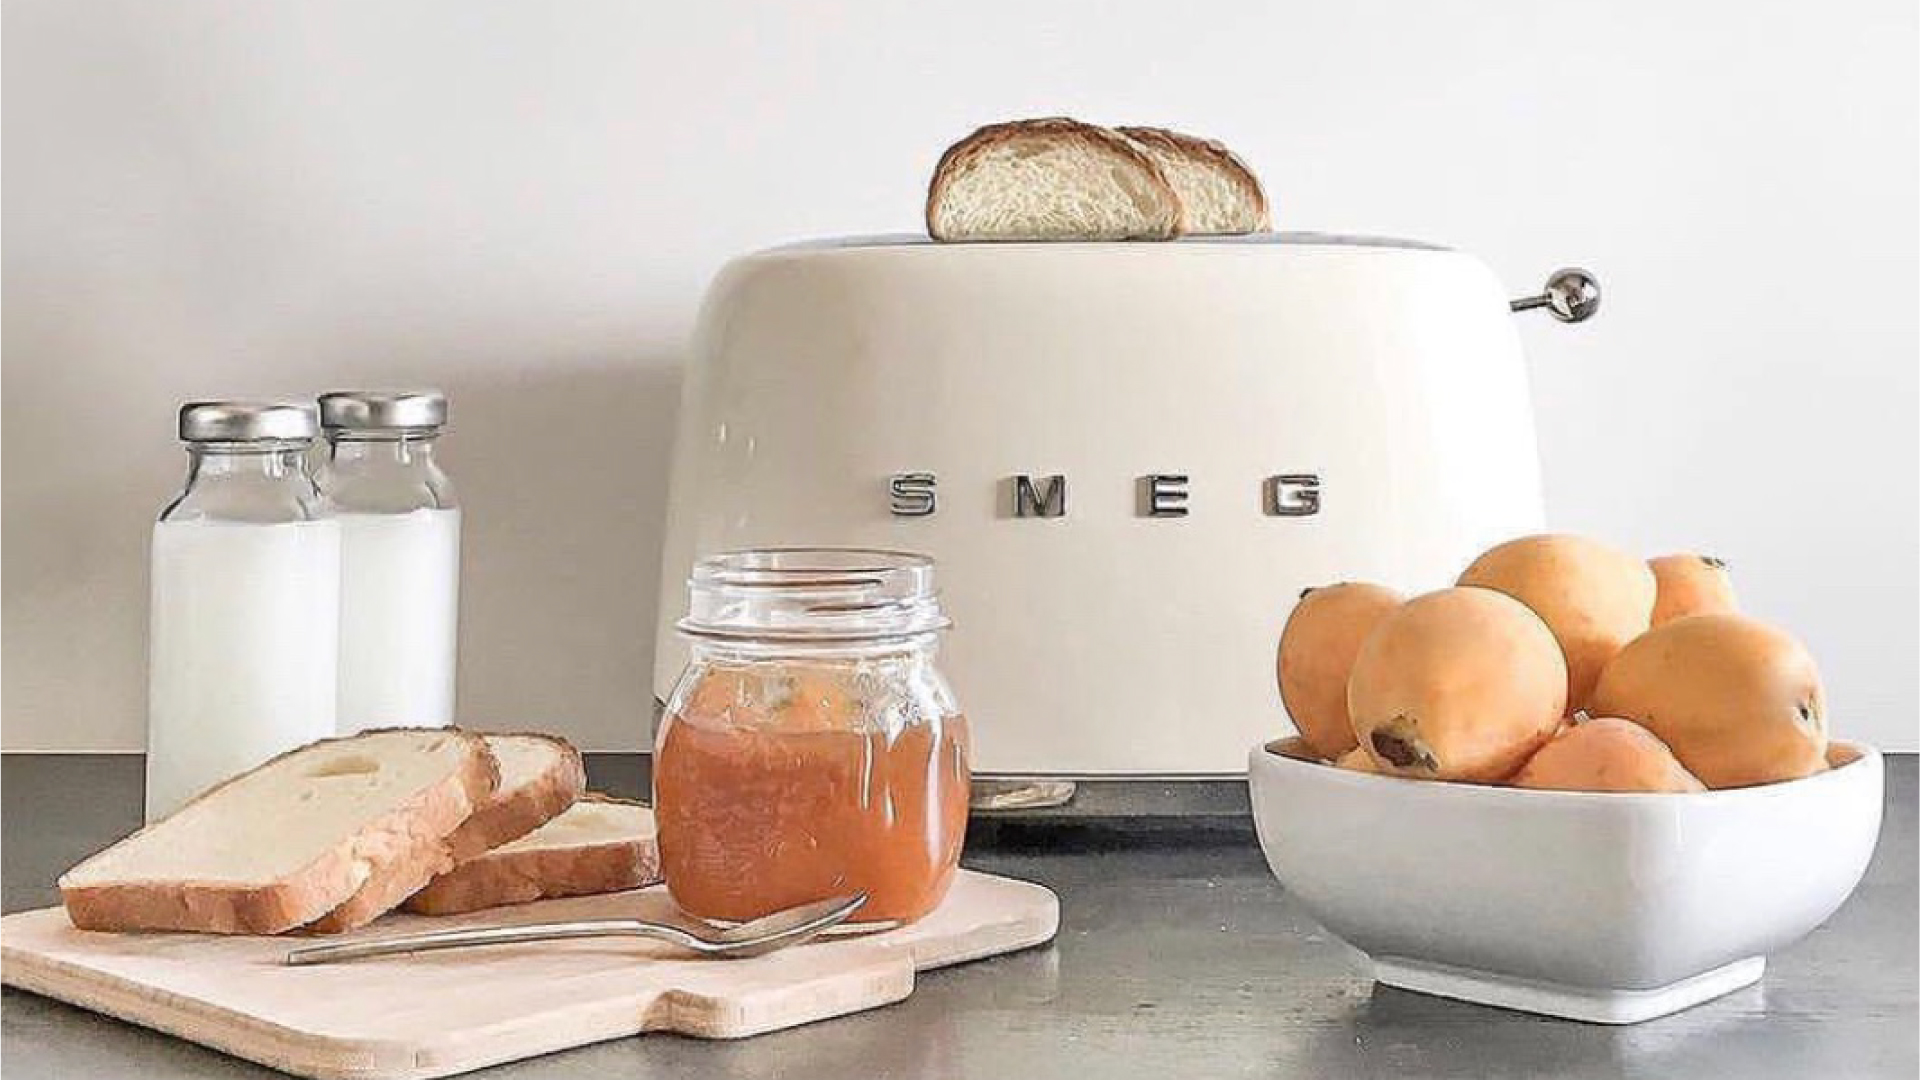 The Smeg Toaster Can Do More Than You Think